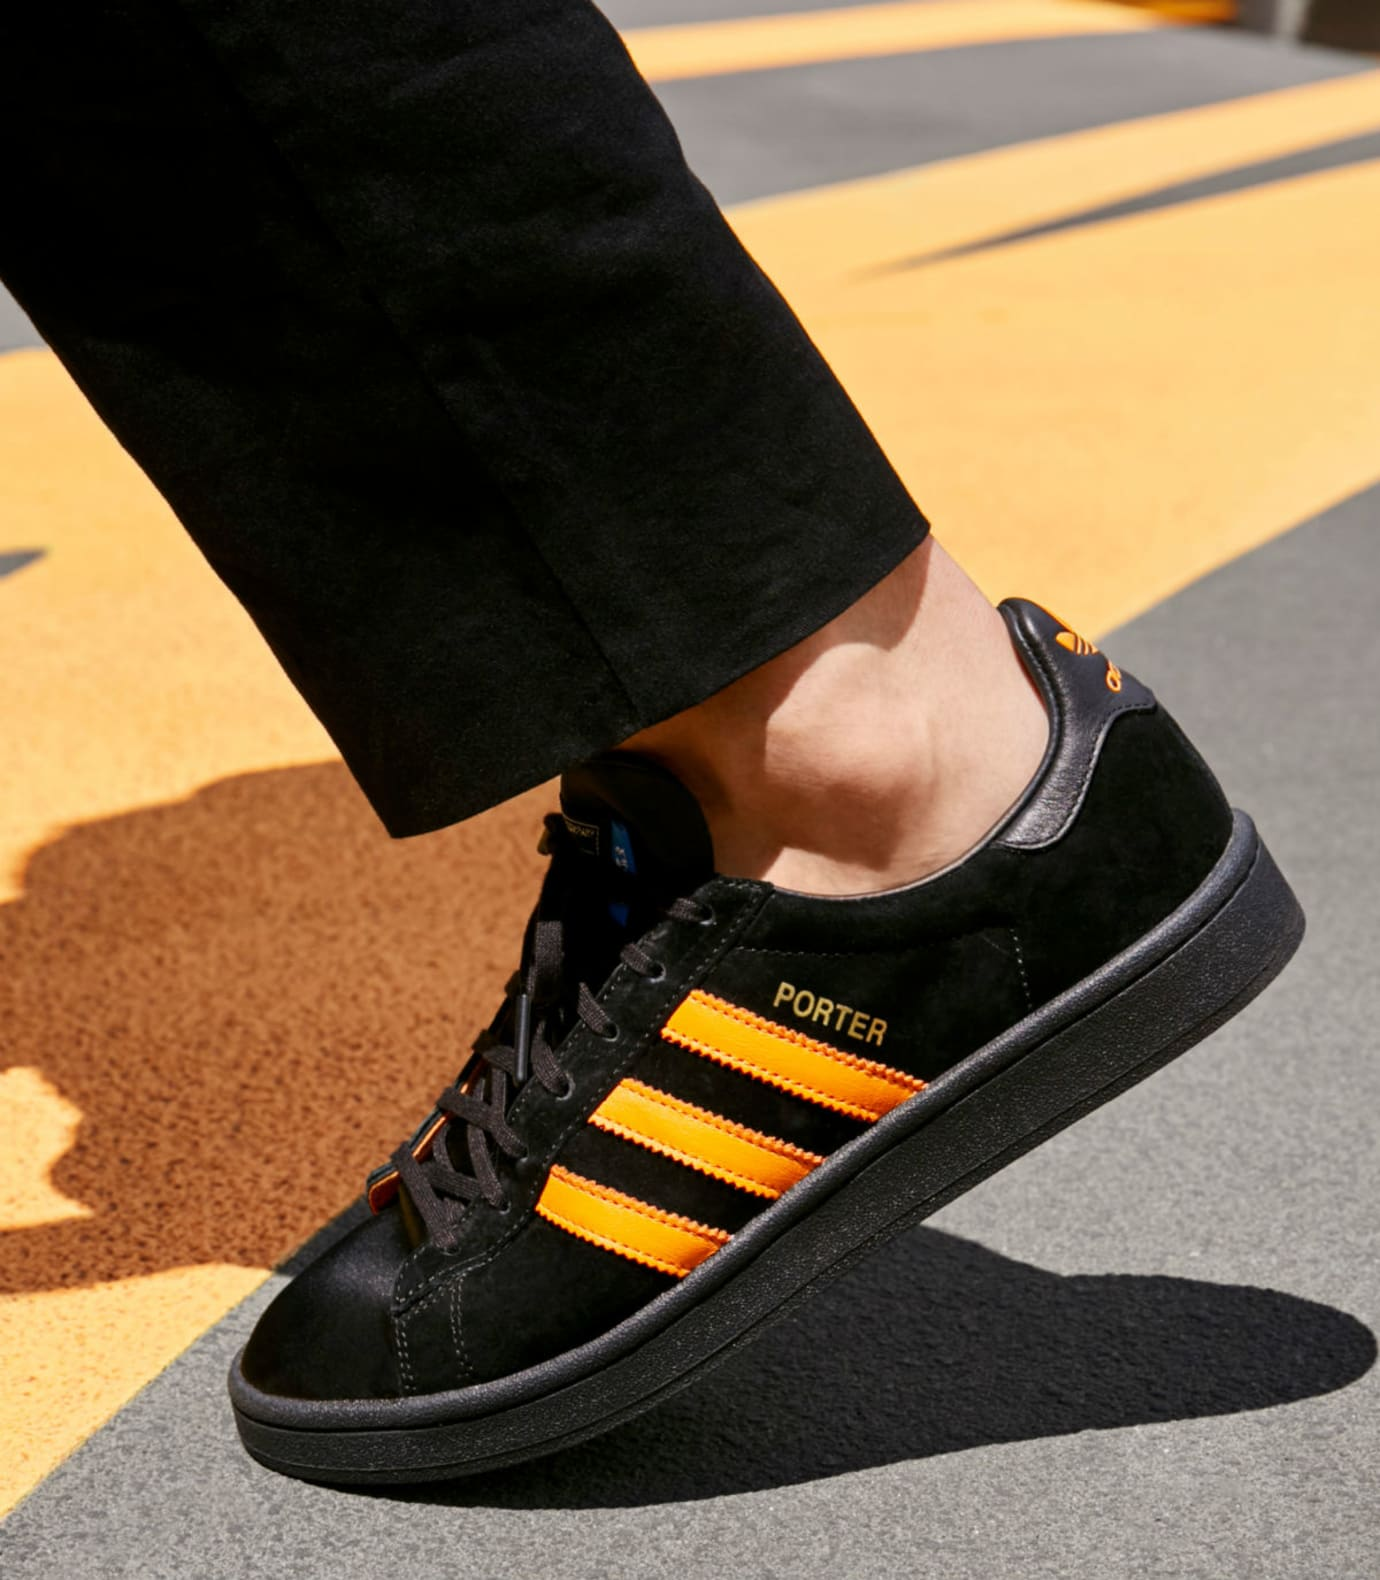 Porter x Adidas Campus Release Date B28143 | Sole Collector